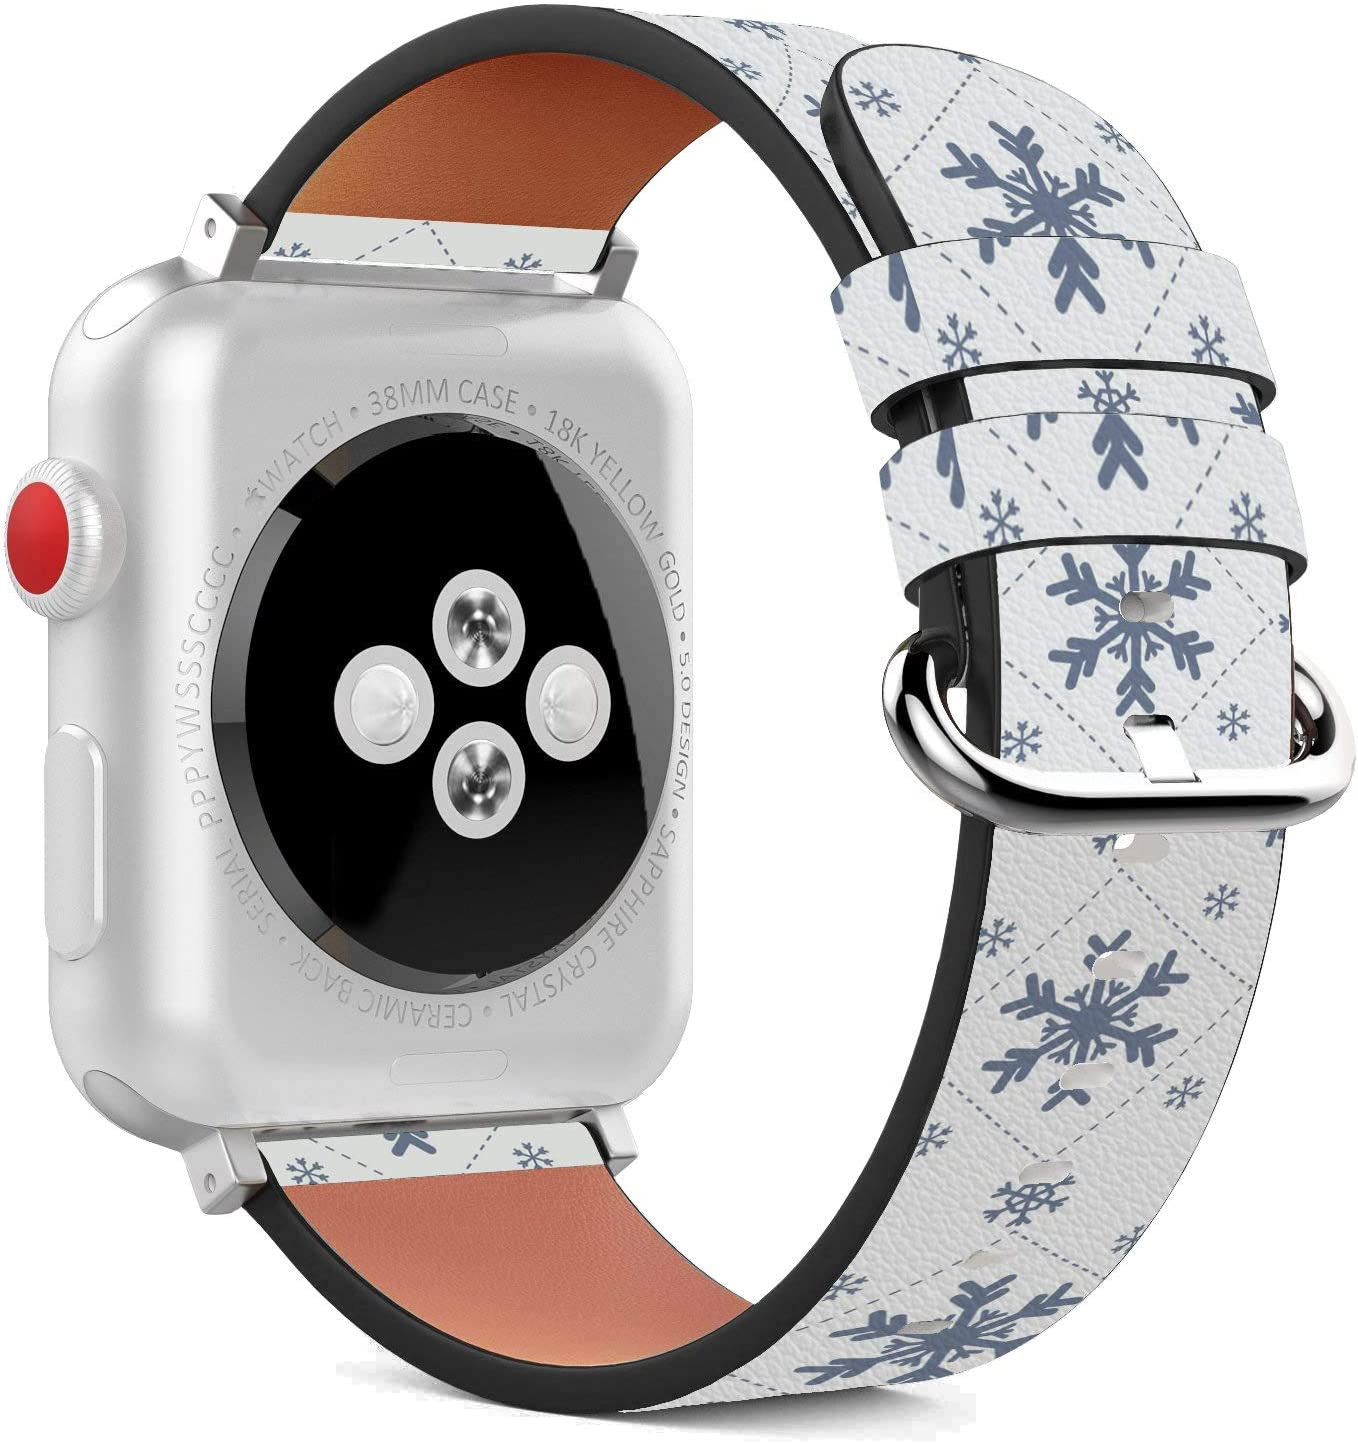 Compatible with Apple Watch - 38mm / 40mm (Serie 5,4,3,2,1) Leather Wristband Bracelet with Stainless Steel Clasp and Adapters - Snowflake Blue Winter